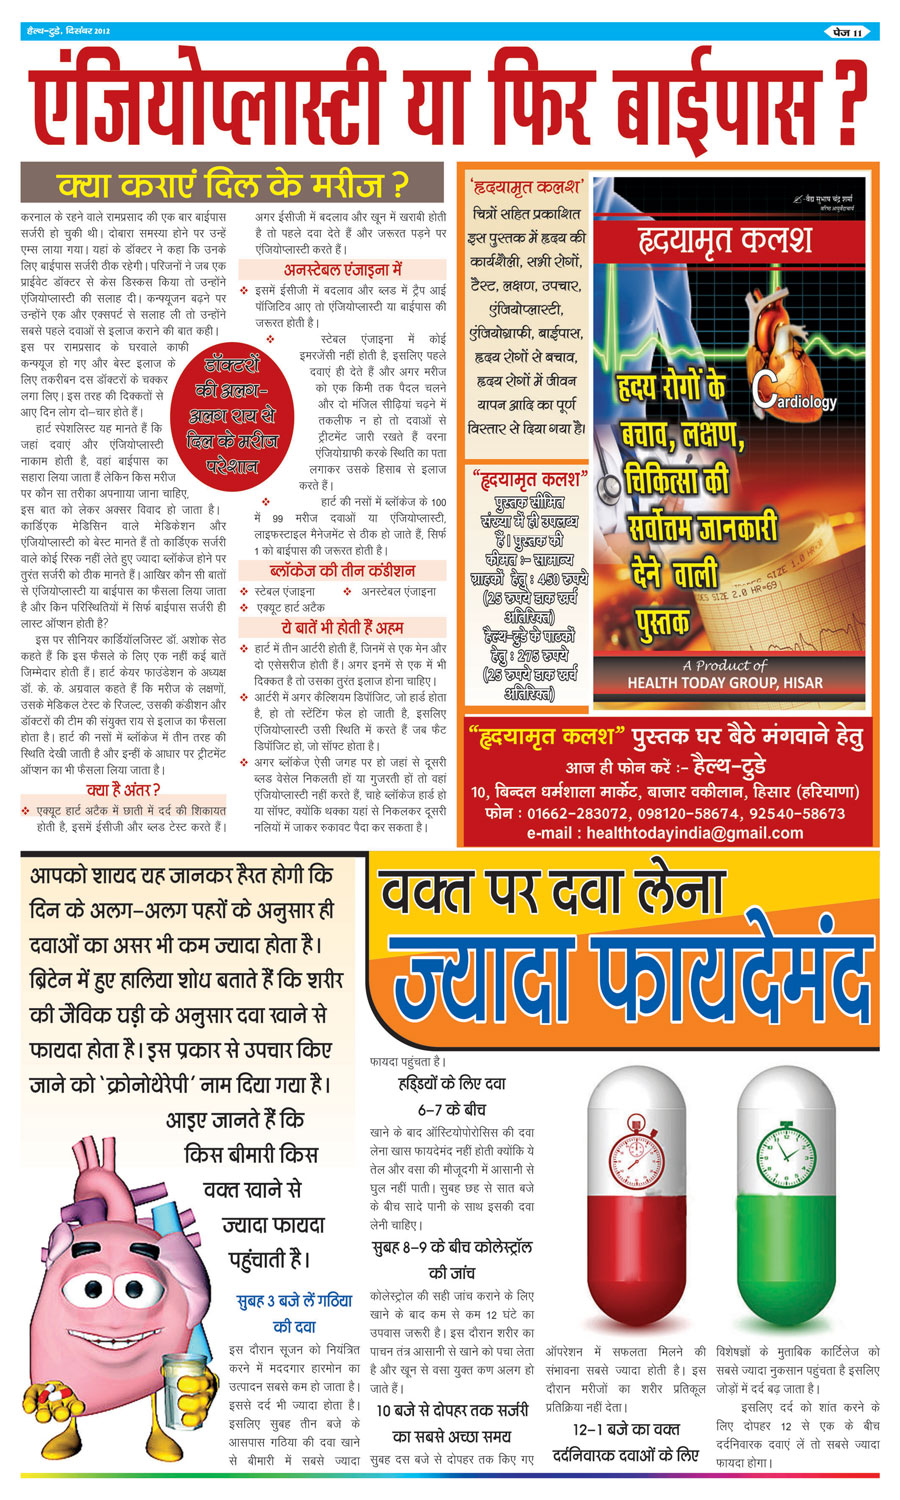 angioplasty clot news cheating doctor health today medical staff requirment aavshkta desi artsiclemedicine health drug today hisar article medical books hindi rmp bihar patna doctor kanoon pharma darpan newspaper health pharma affair ramesh  verma hisar rti